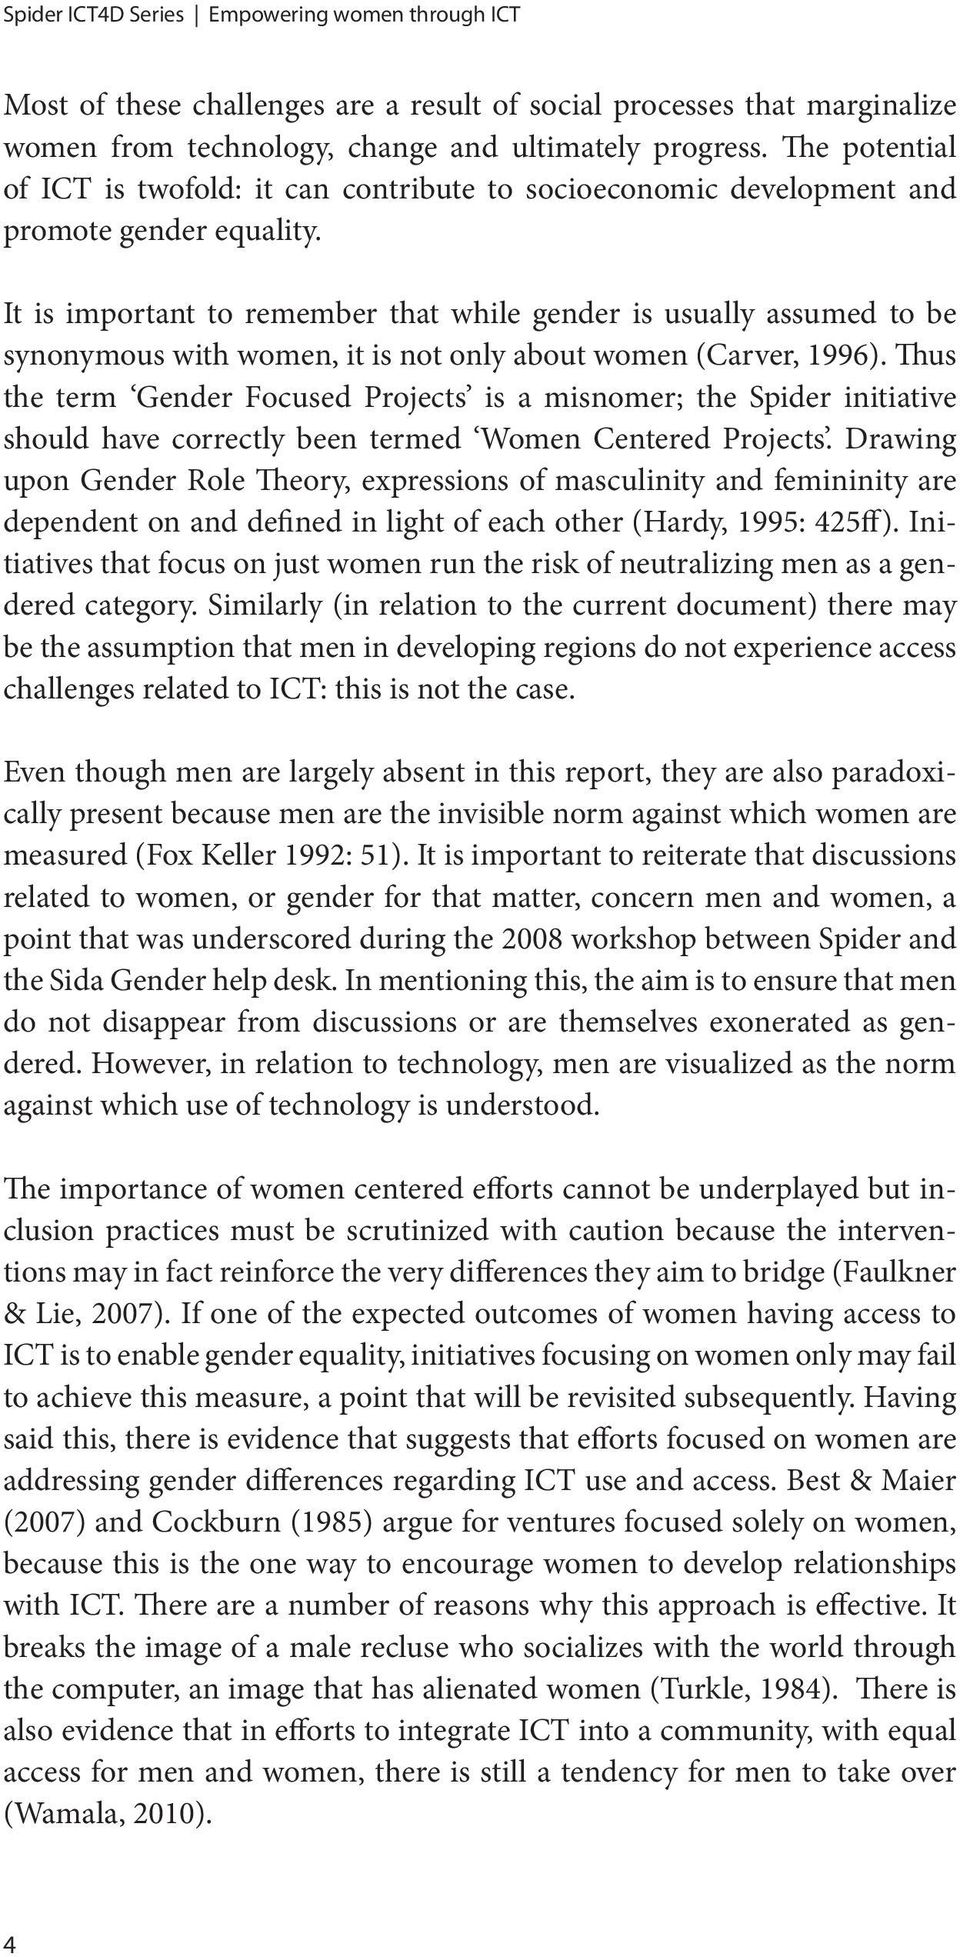 It is important to remember that while gender is usually assumed to be synonymous with women, it is not only about women (Carver, 1996).